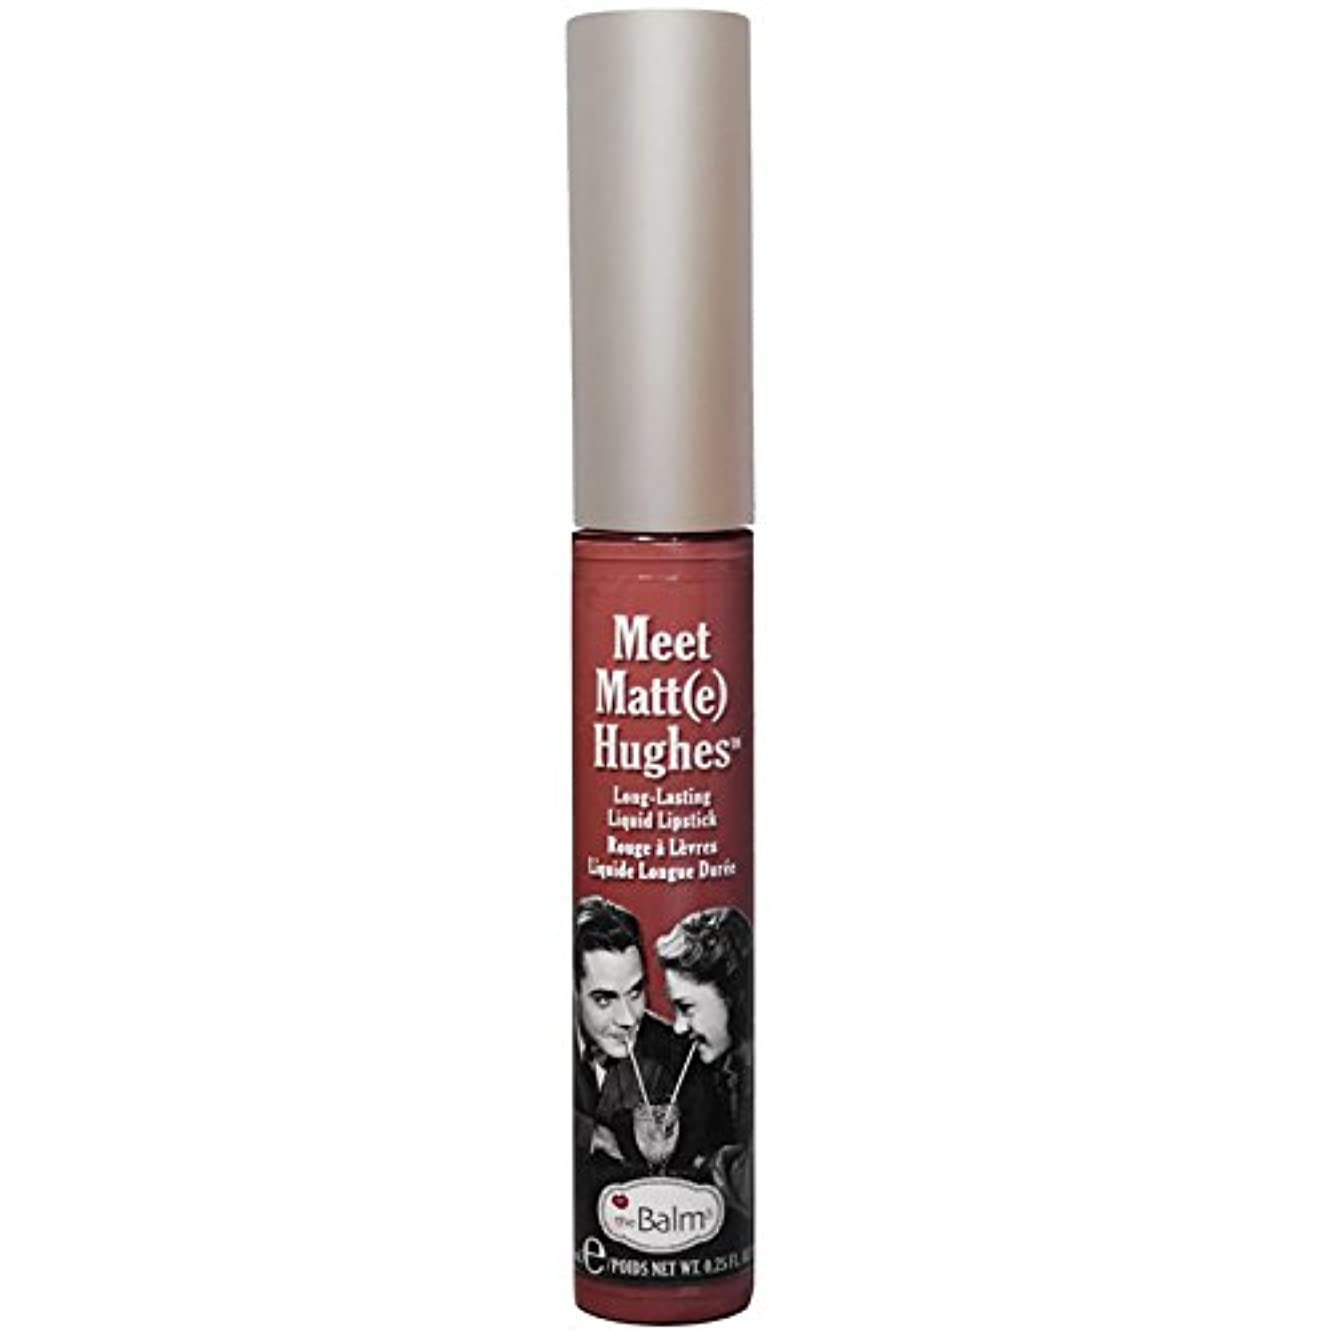 セーター不潔かわいらしいtheBalm - Meet Matt(e) Hughes Long-Lasting Liquid Lipstick Trustworthy [並行輸入品]